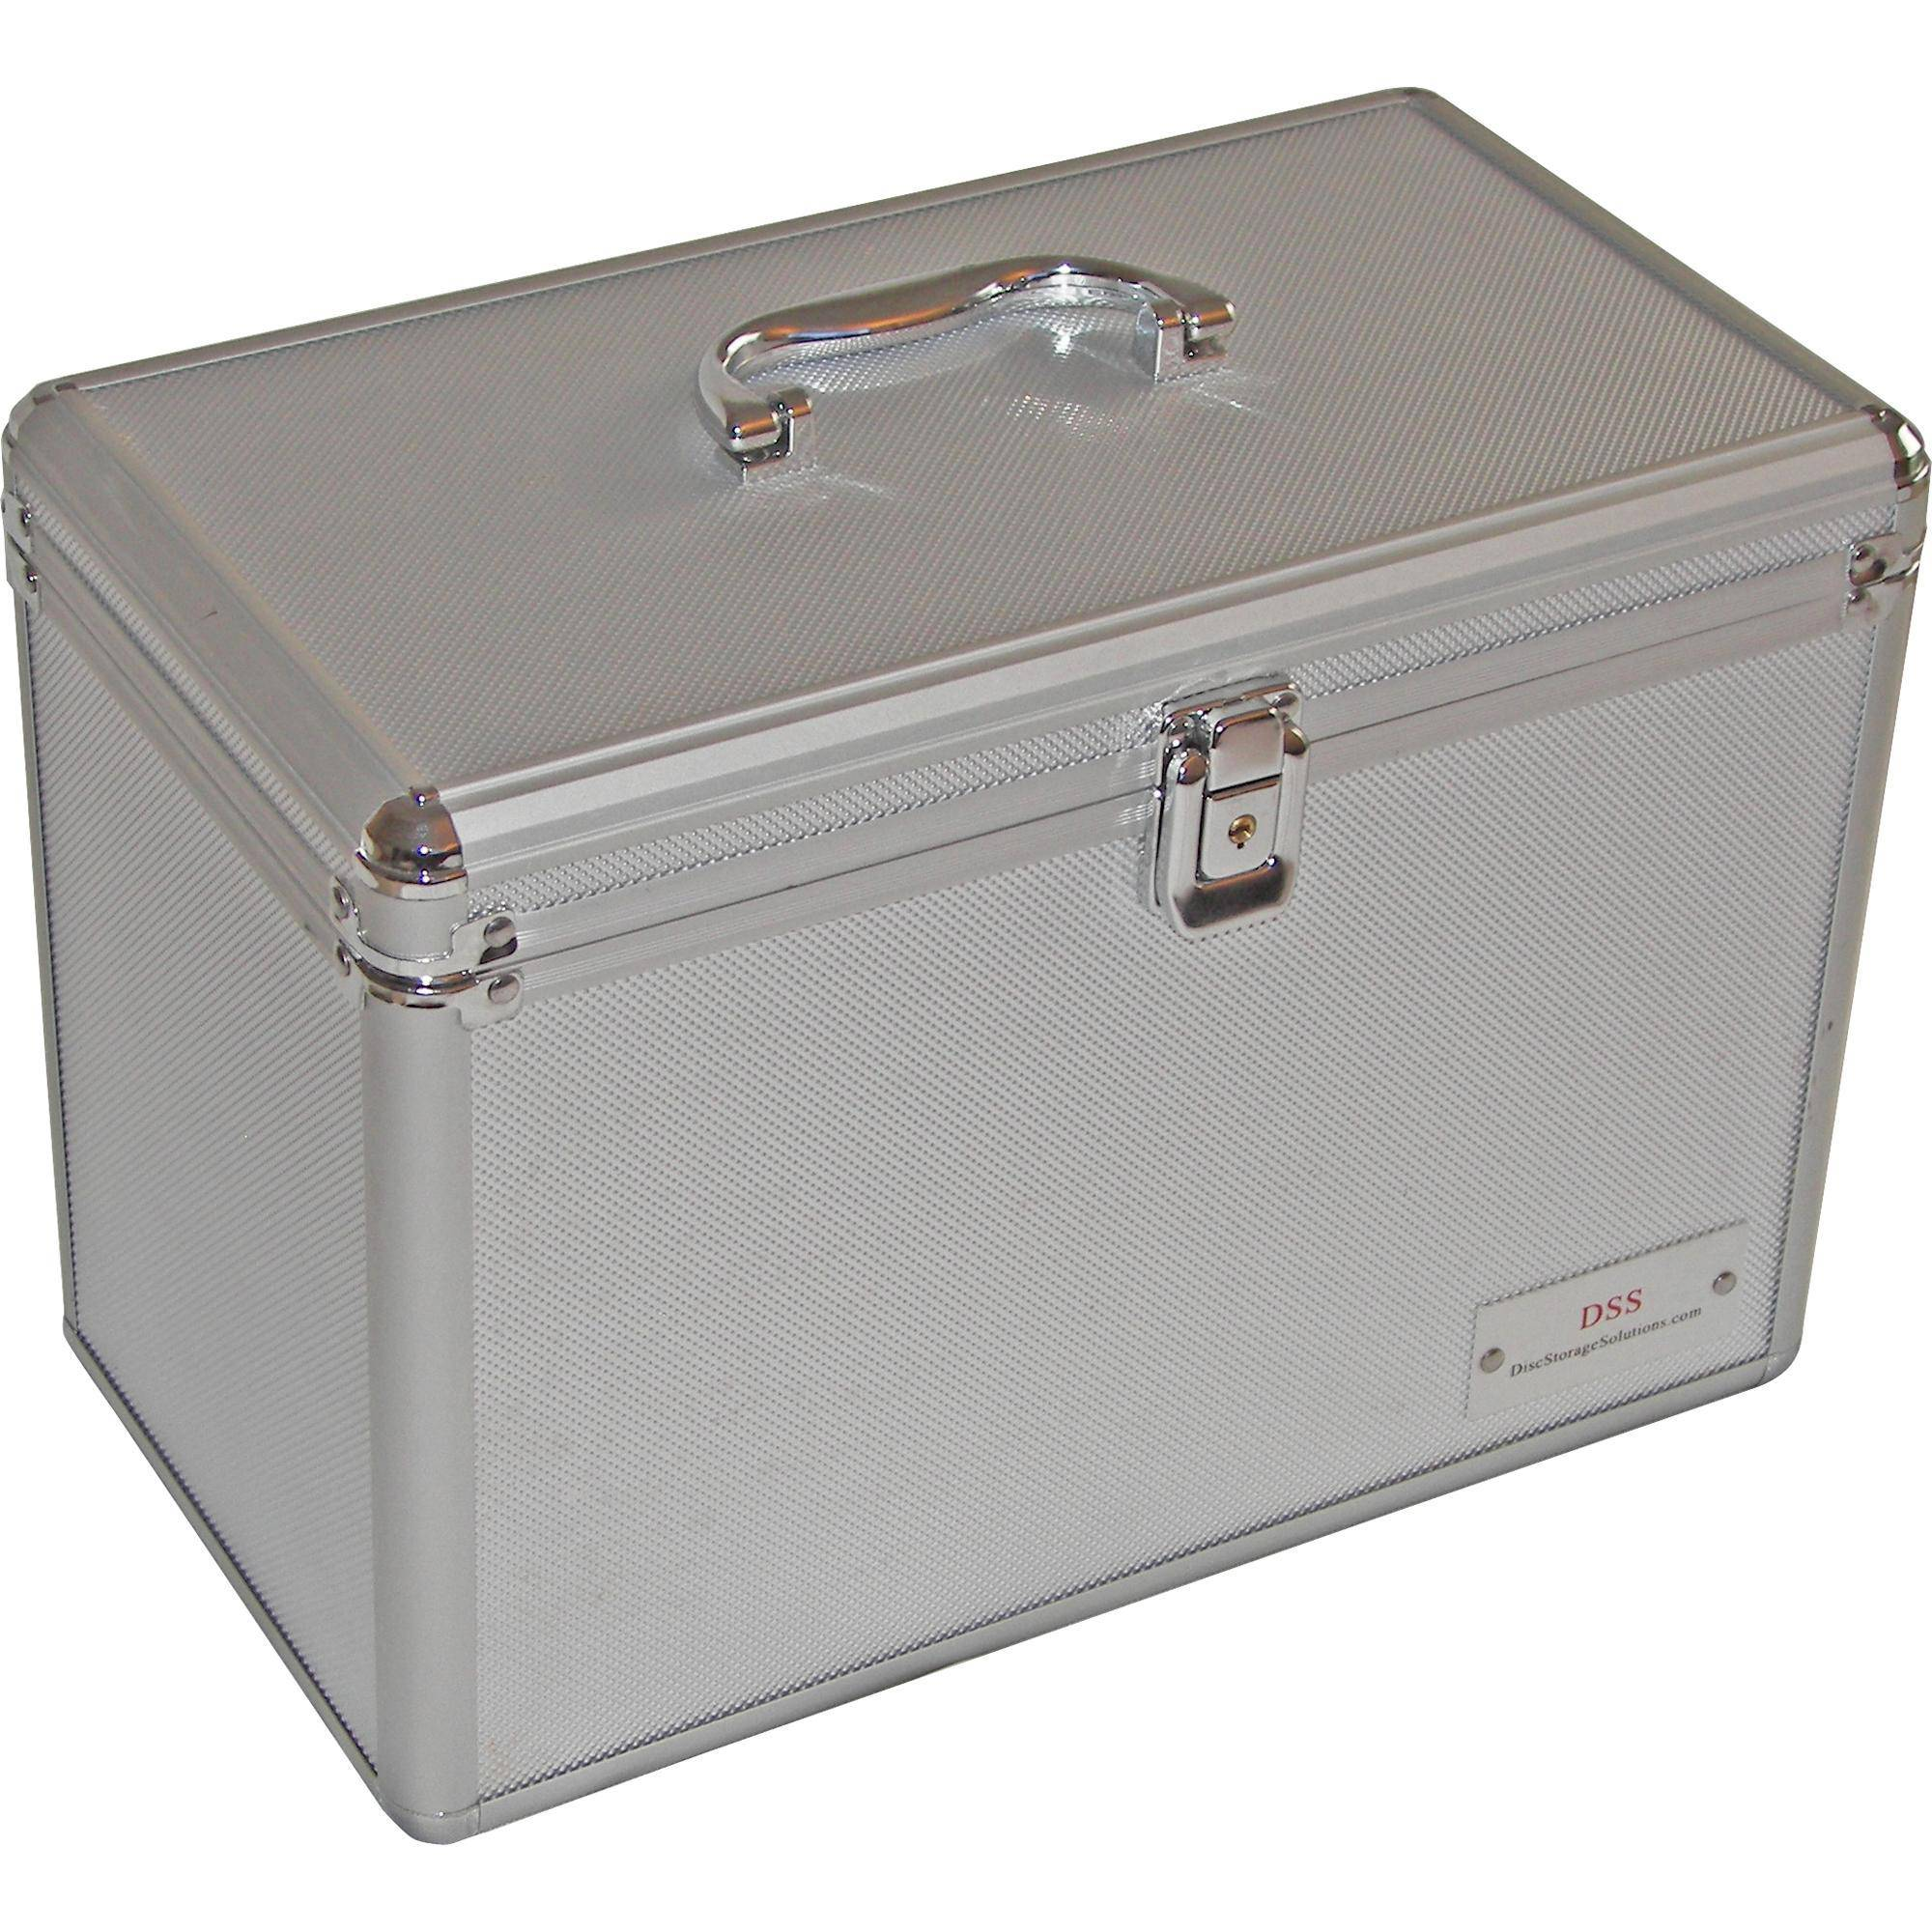 DSS - Disc Storage Solutions DSS-150 PVC DVD Storage Case  sc 1 st  Bu0026H & DSS - Disc Storage Solutions DSS-150 PVC DSS 150 DVD - SILVER